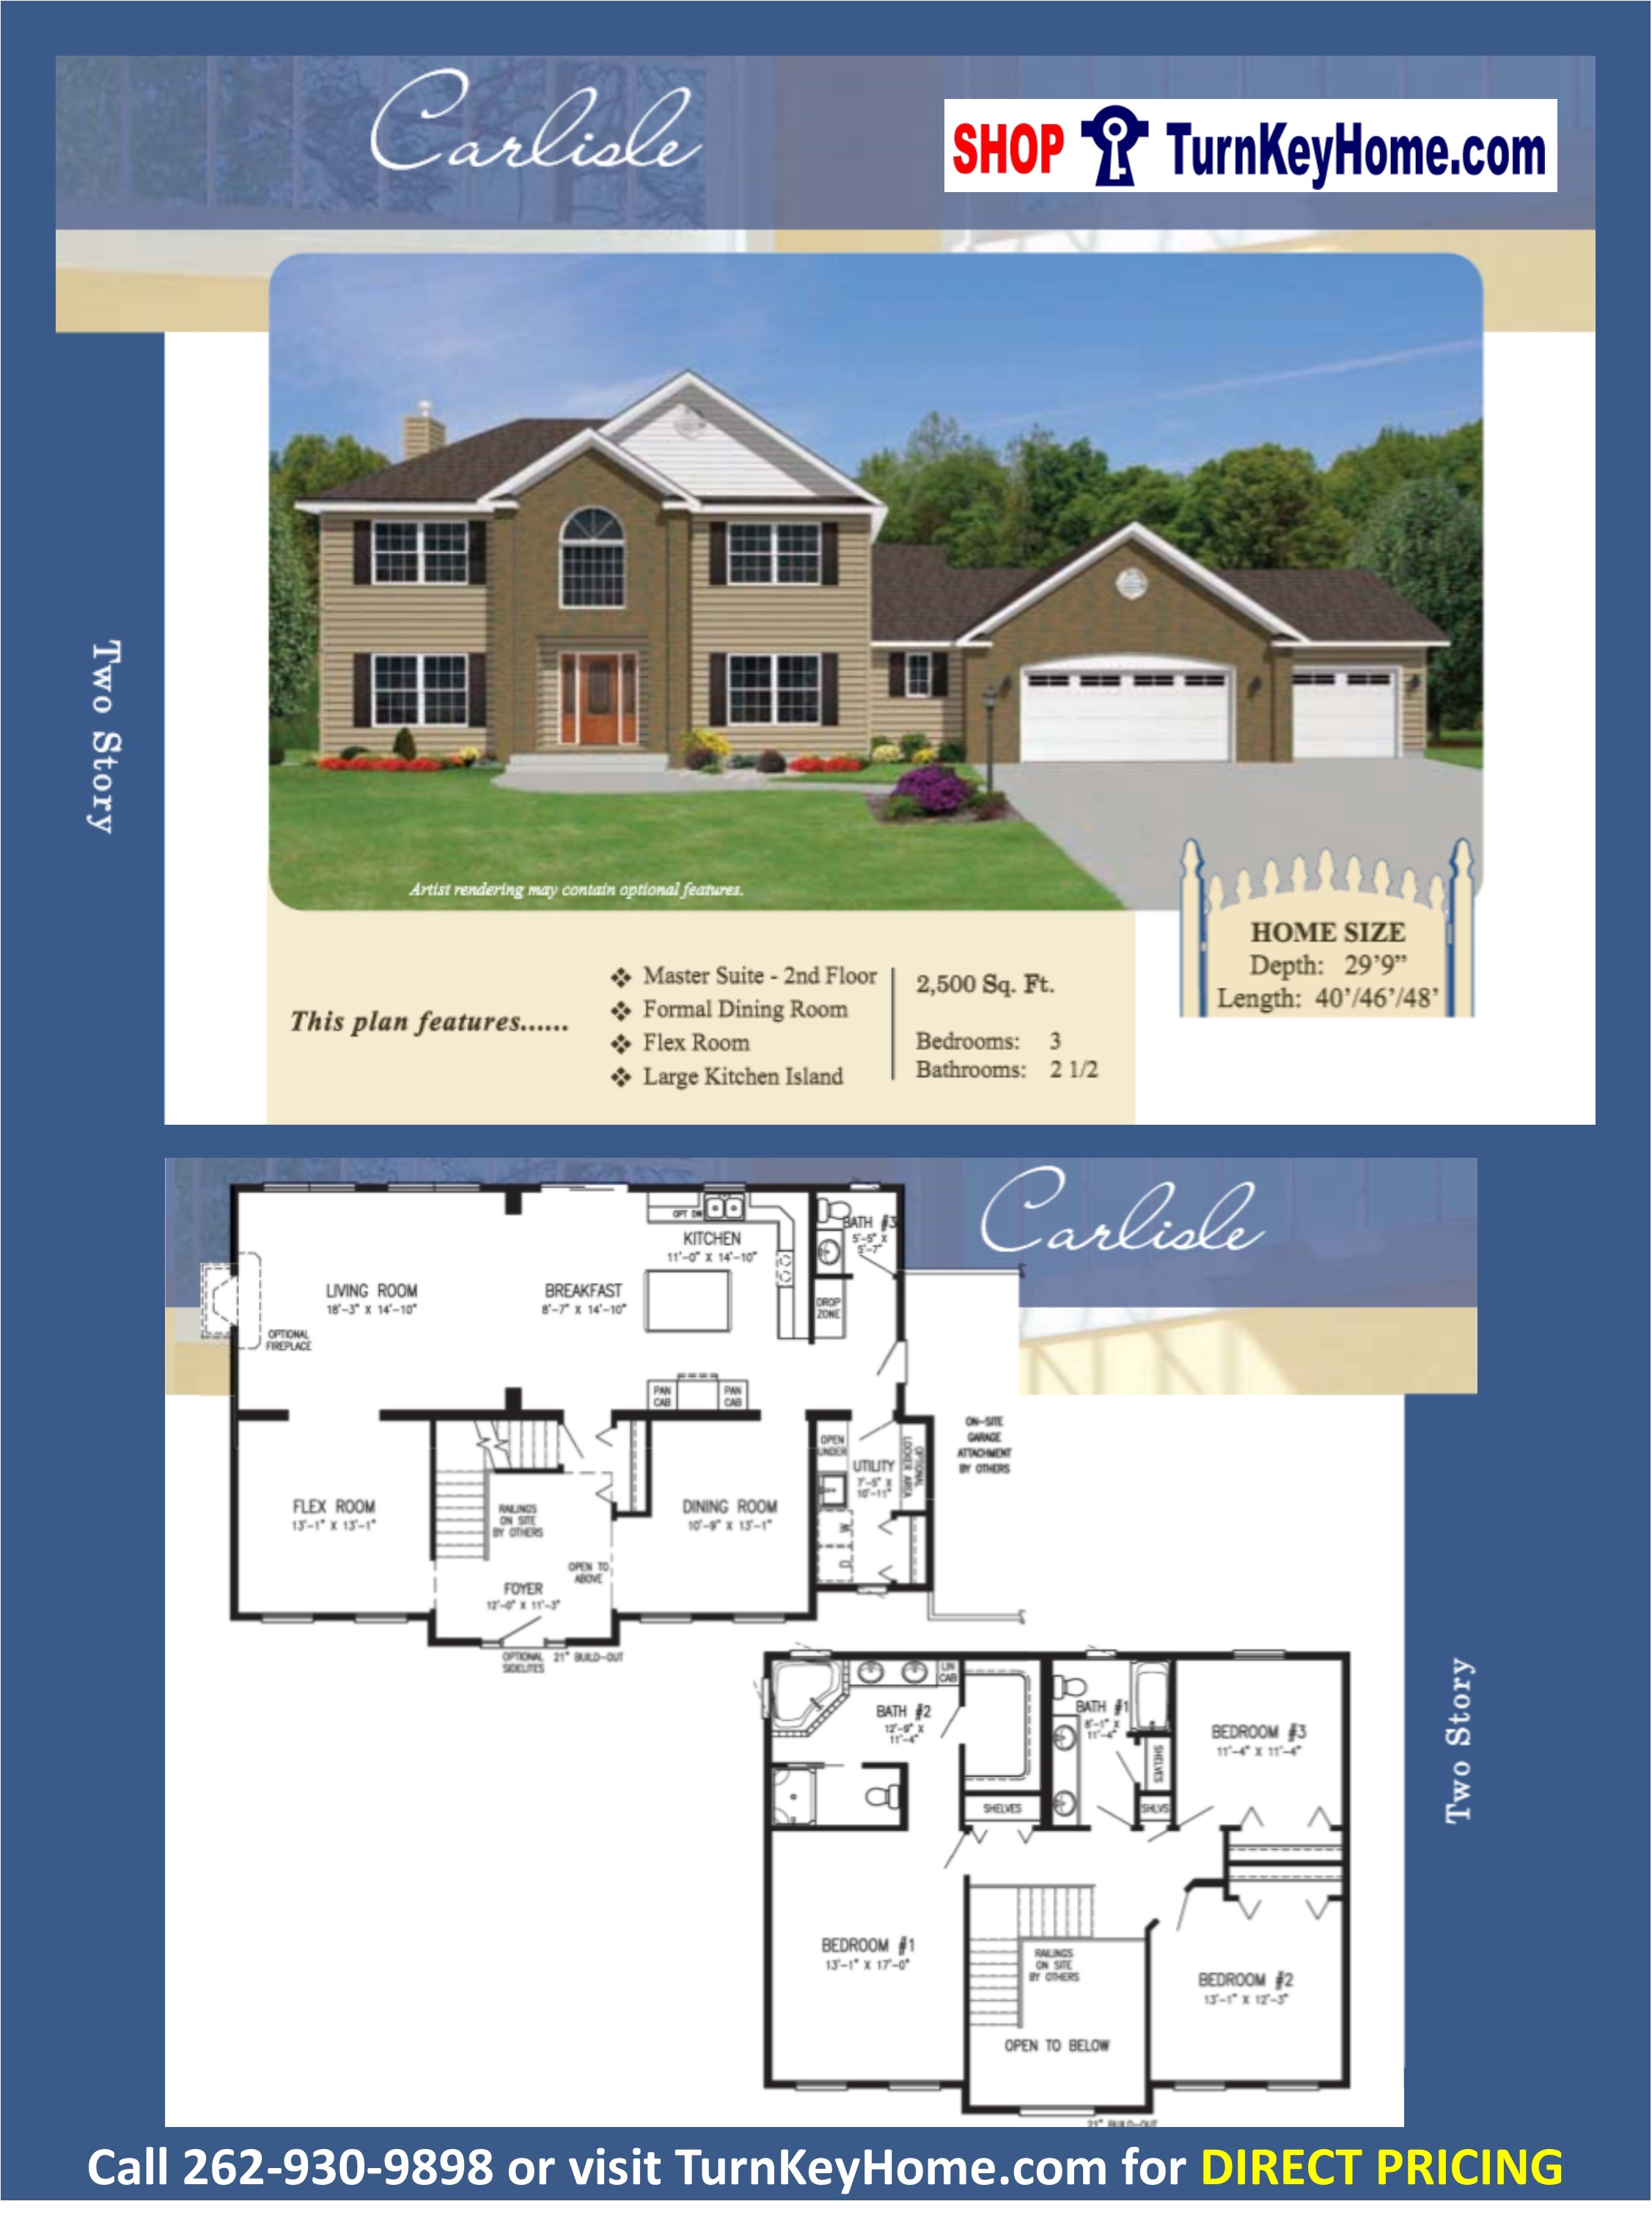 CARLISLE Two Story Home 3 Bed 2.5 Bath Plan 2500 SF Priced From ...